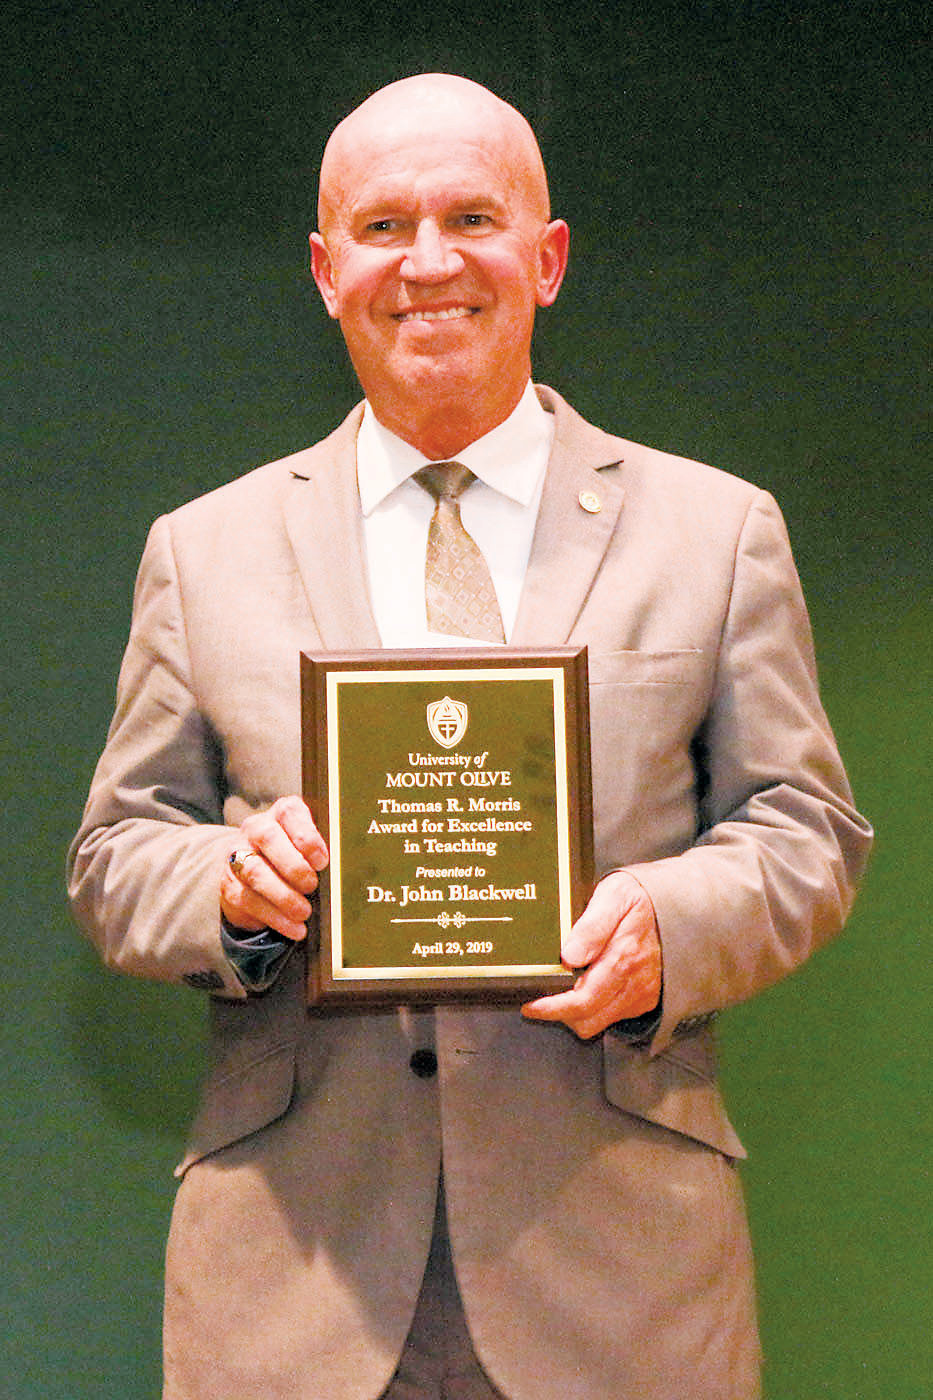 Dr. John Blackwell is honored with the Thomas R. Morris Award at the University of Mount Olive.